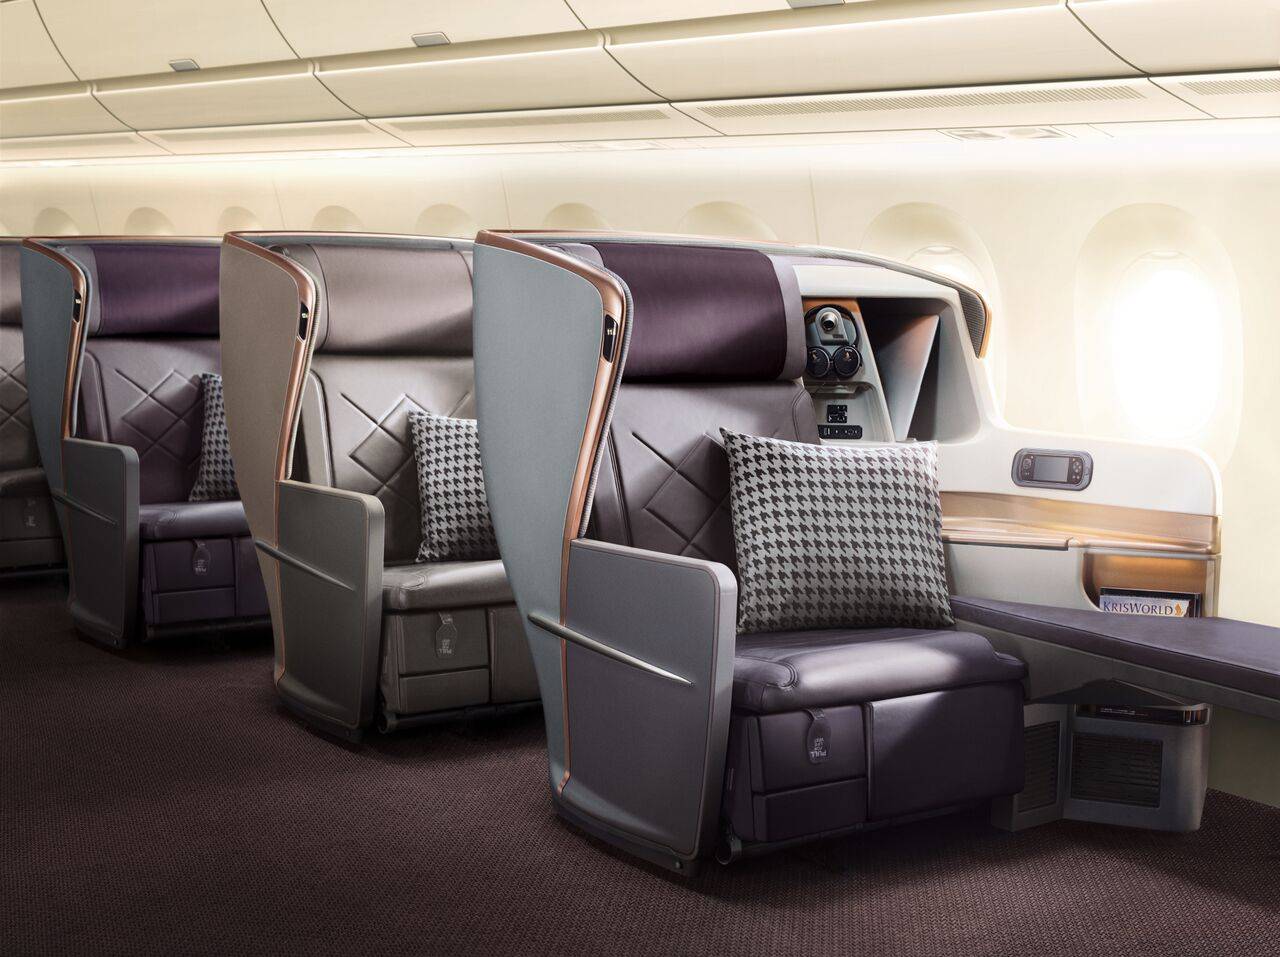 Singapore A350ULR Business Class